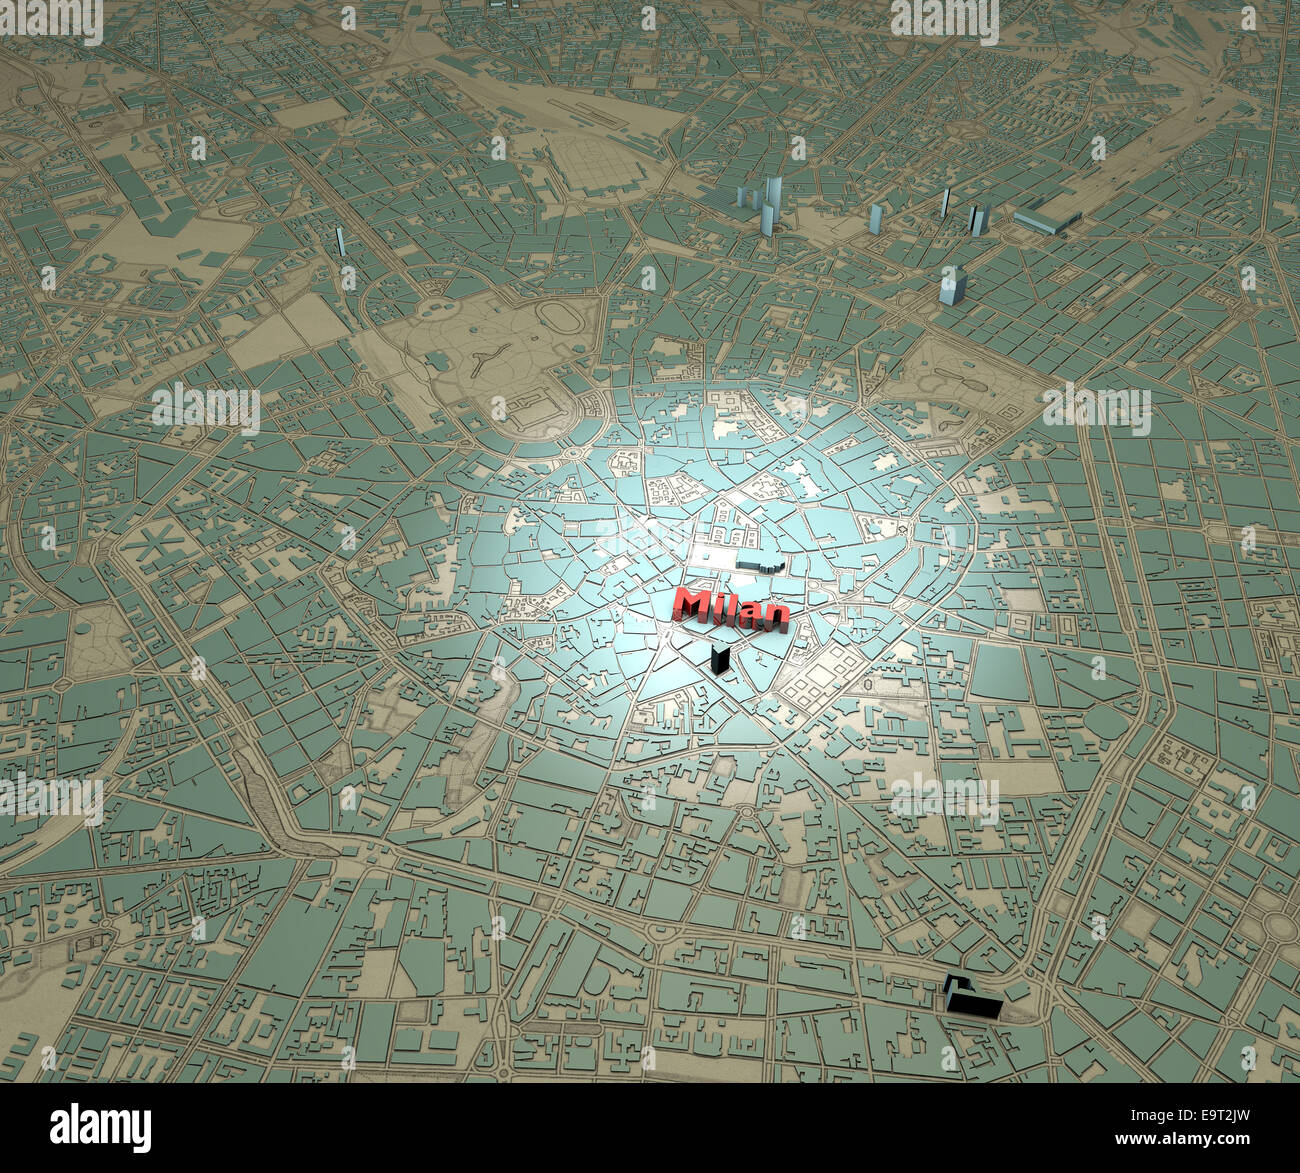 Map of downtown Milan, Italy Stock Photo: 74902321 - Alamy